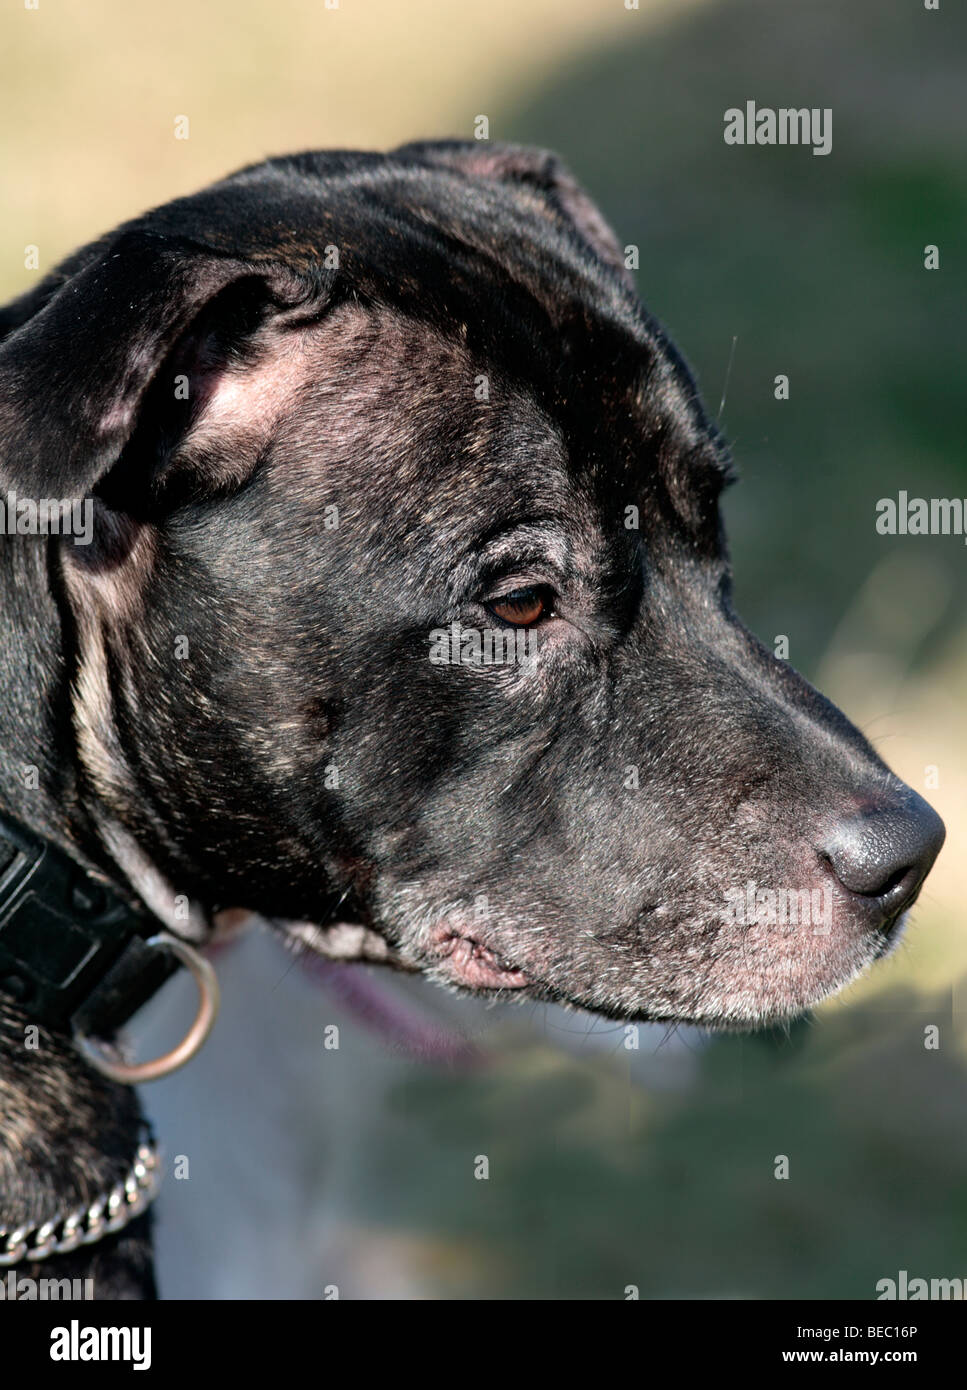 Face of a Pit bull dog - Stock Image